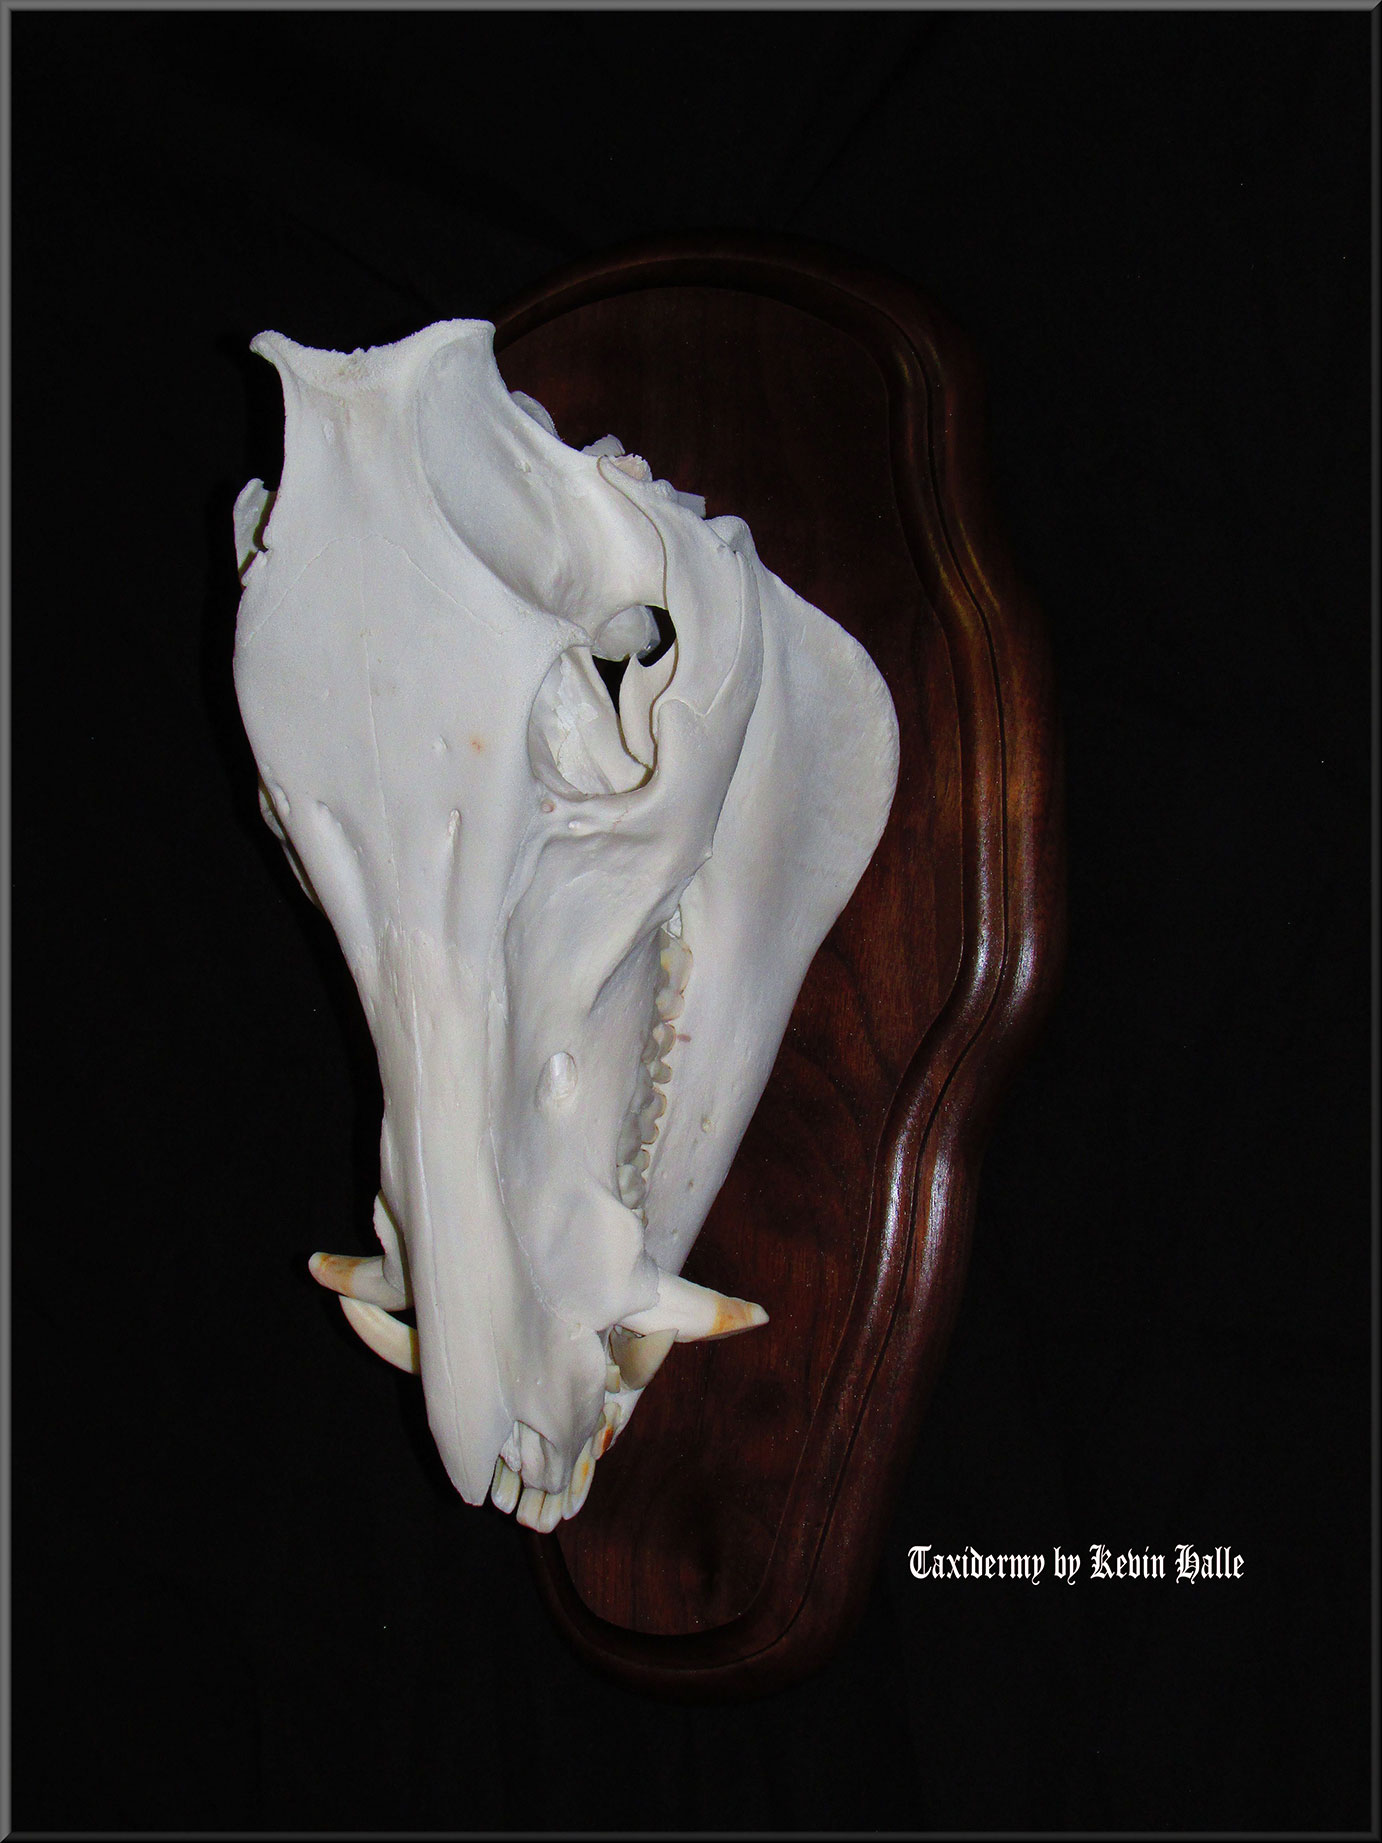 Taxidermy How To Hog Skull to European Mount